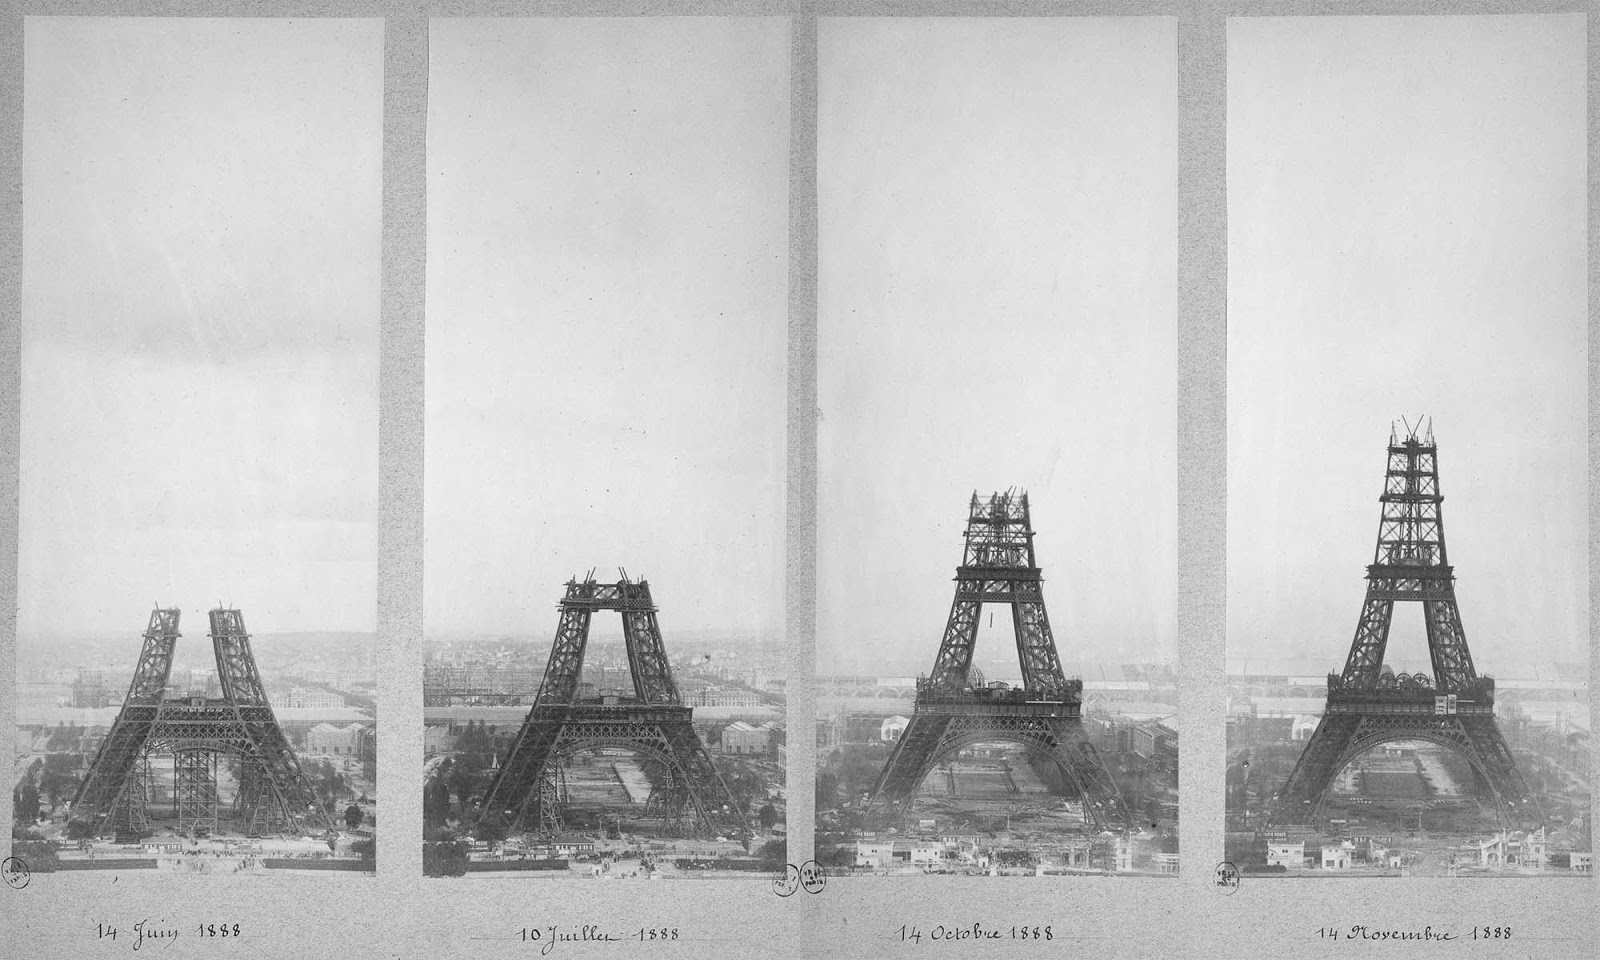 """a history of the construction of the eiffel tower in paris When you hear the word """"paris,"""" the first thing that comes to mind is almost certainly the eiffel tower but did you know many parisians never wanted it built, and protested its construction vehemently."""